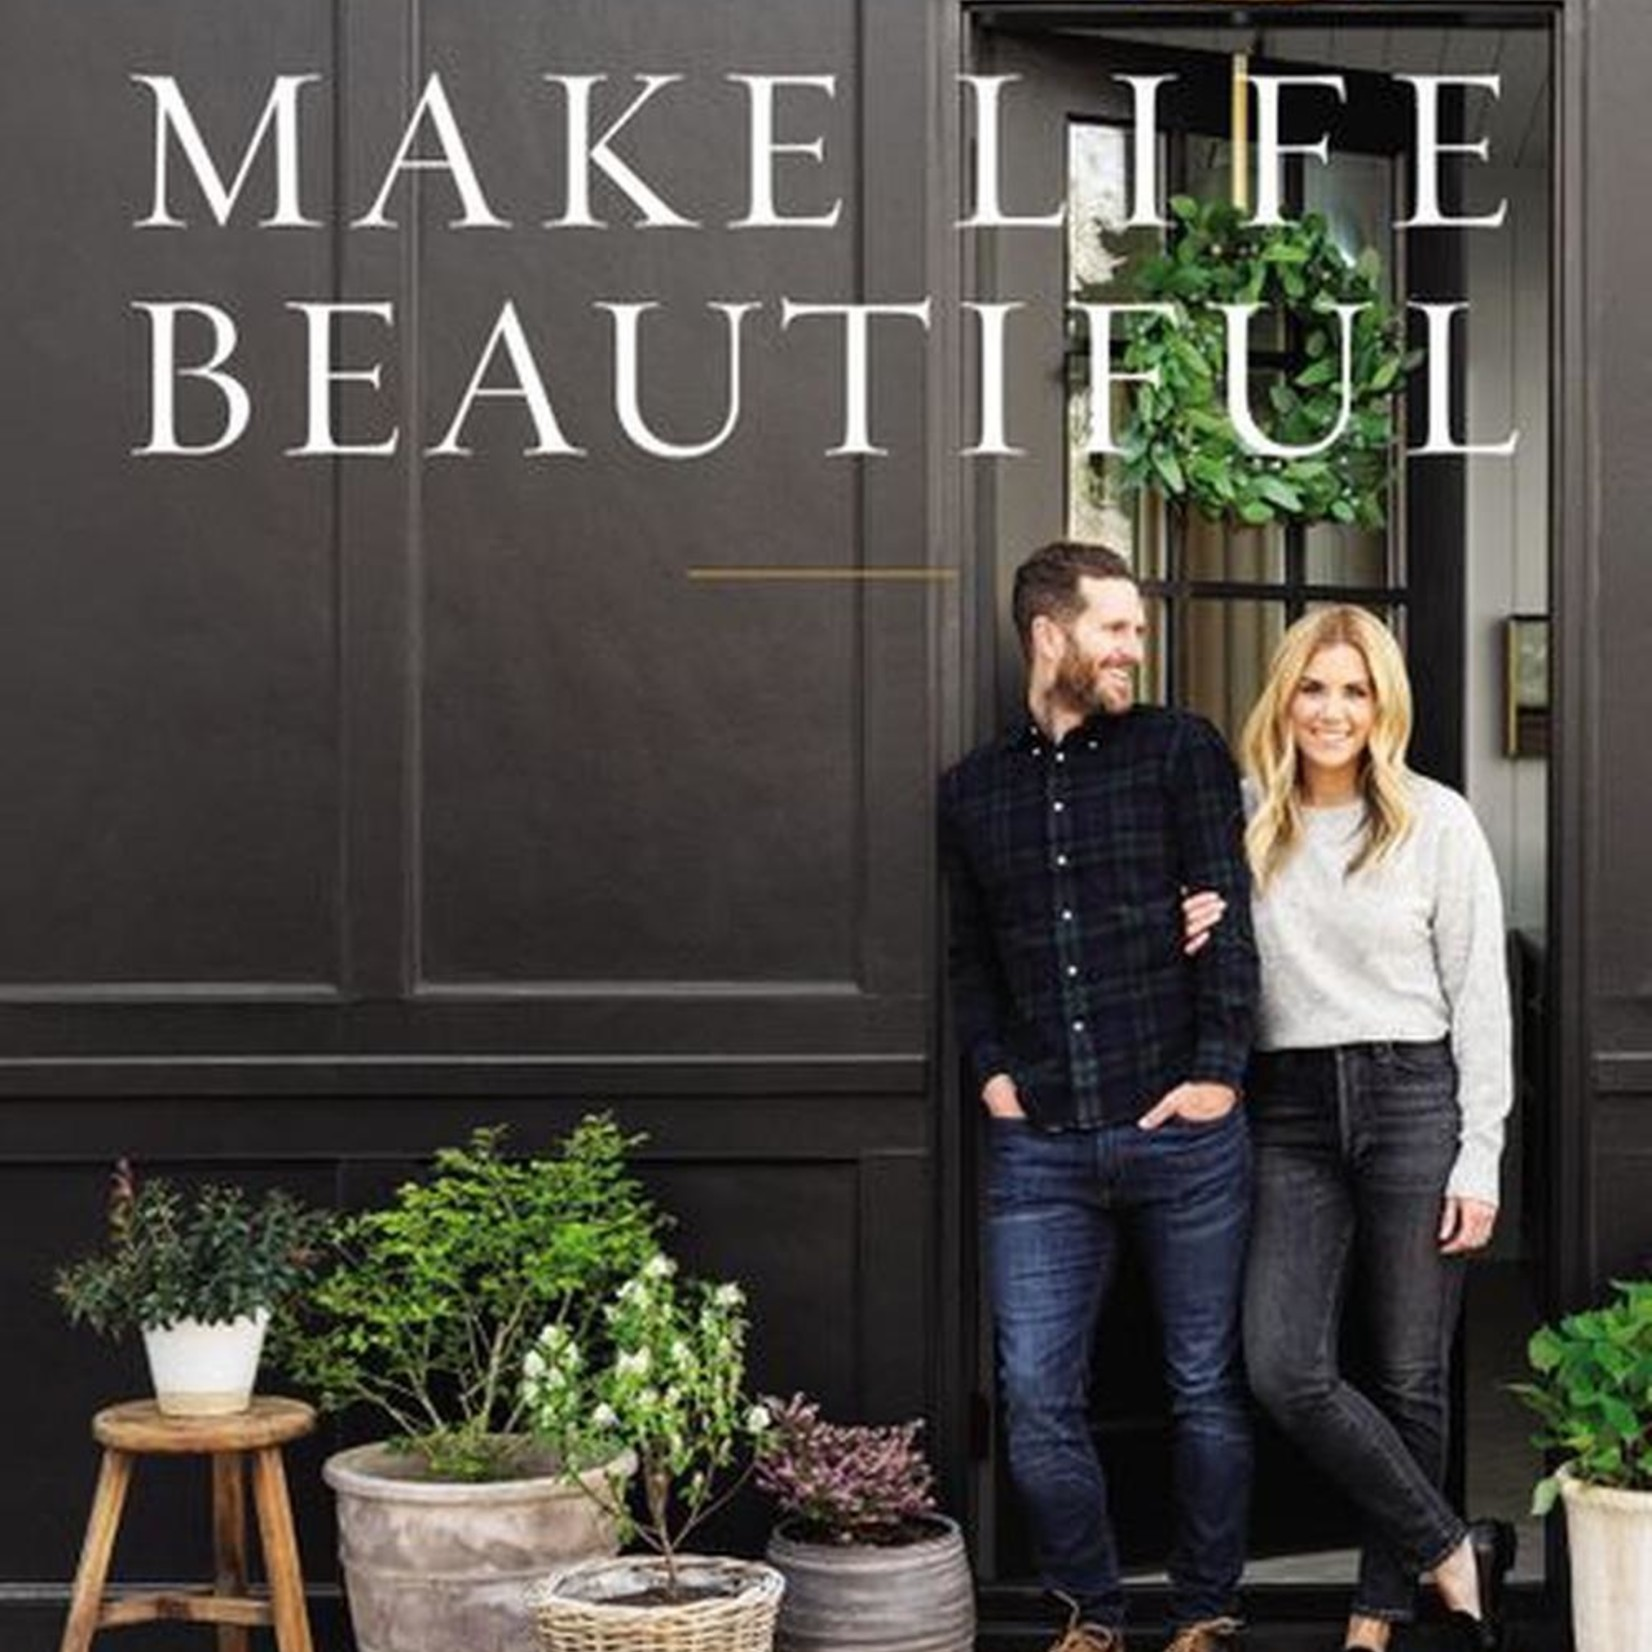 Make Life Beautiful by Syd and Shea McGee